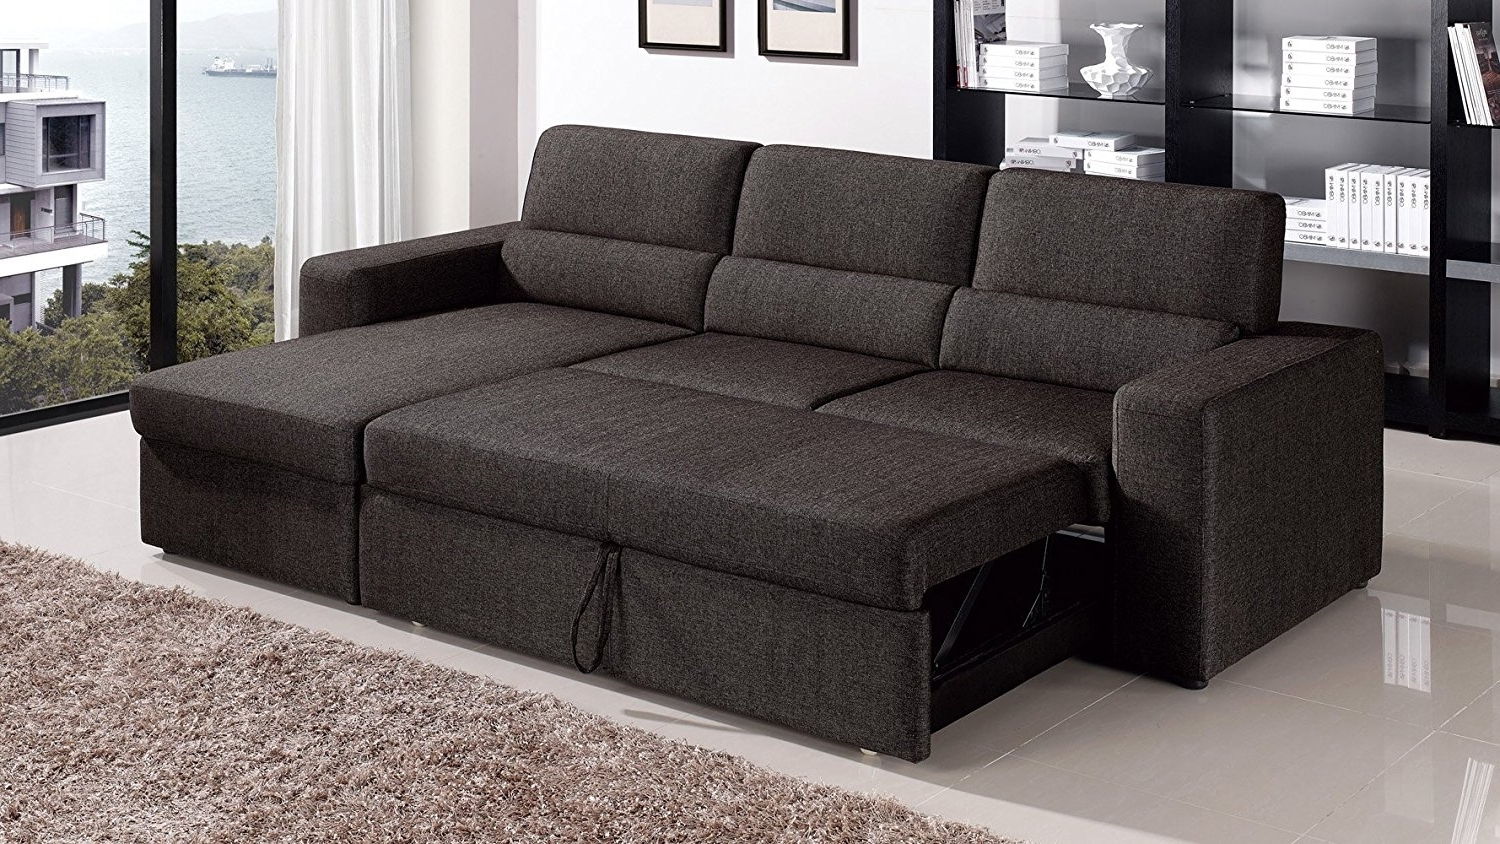 Fashionable Sleeper Chaise Sofas For Amazon: Black/brown Clubber Sleeper Sectional Sofa – Right (View 7 of 15)